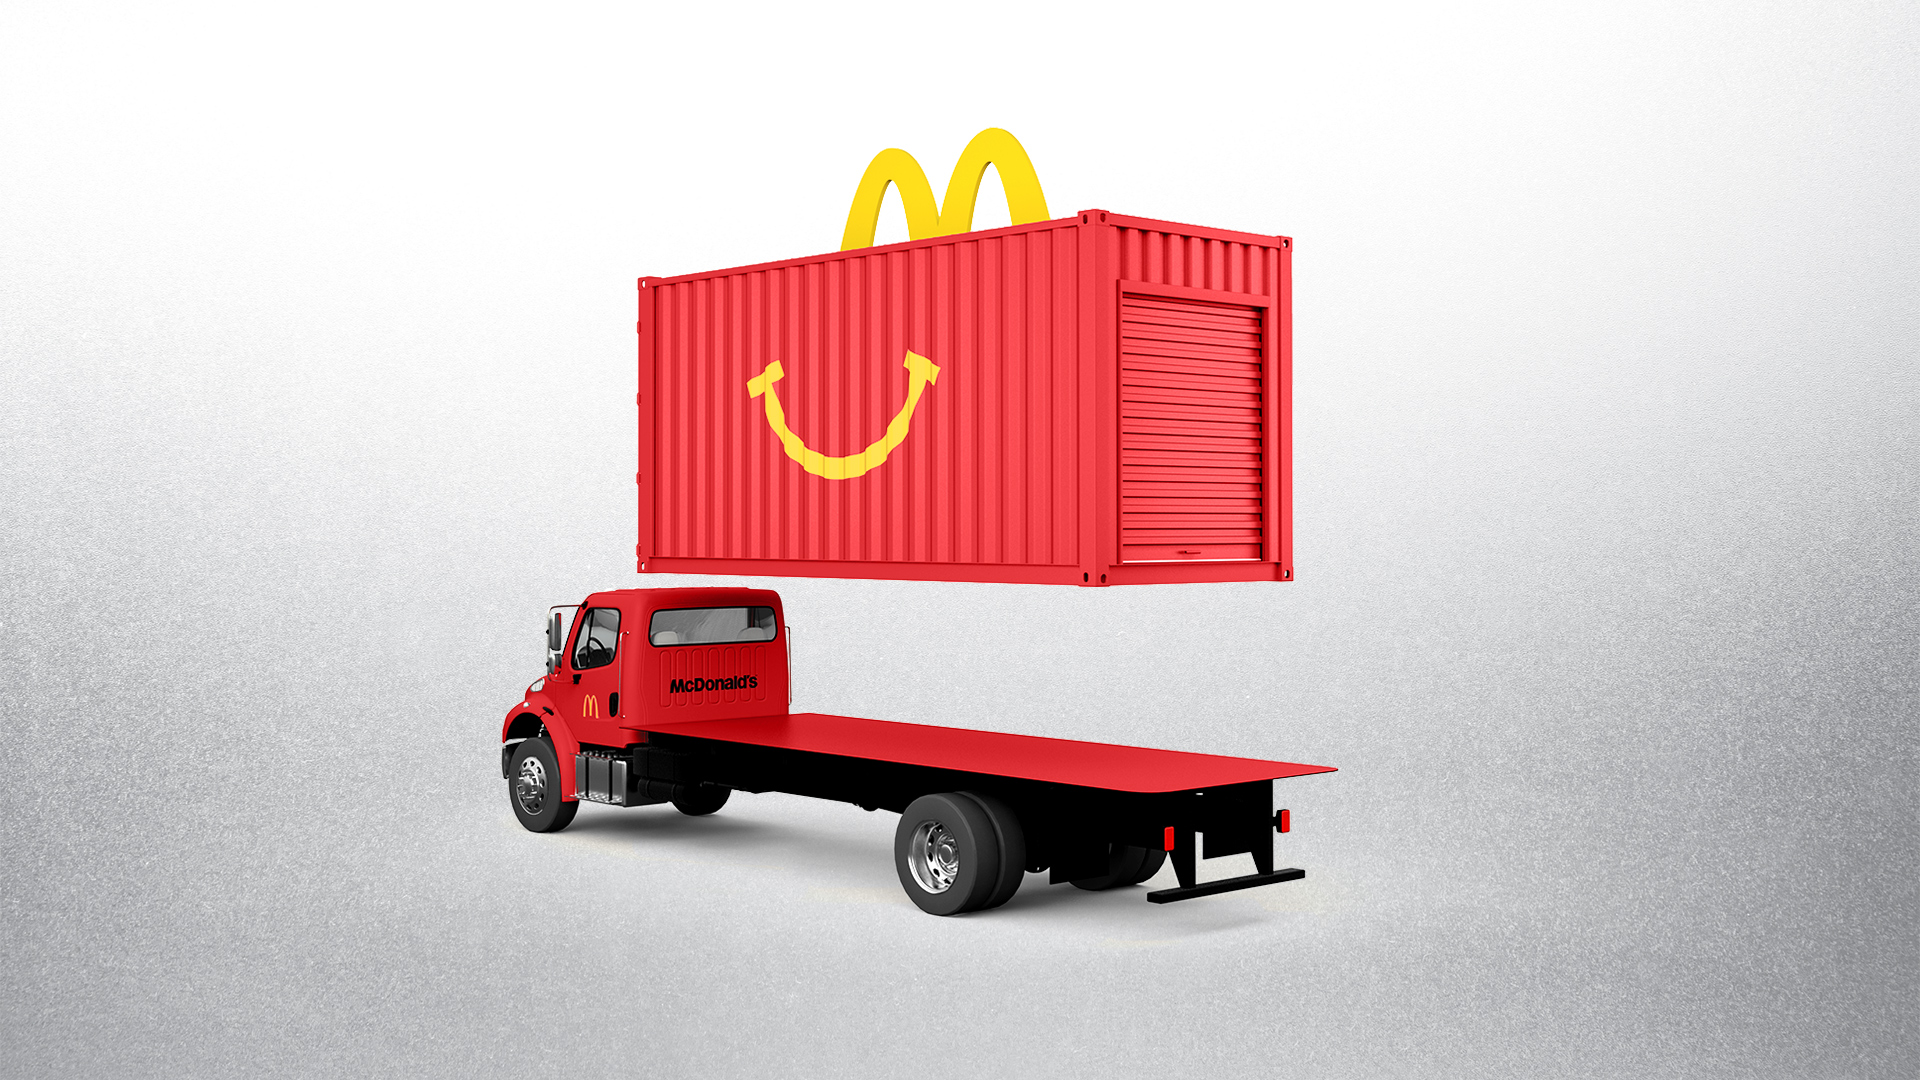 McDonald's Happy Meal Red 20' Shipping Container on Truck Exploded View